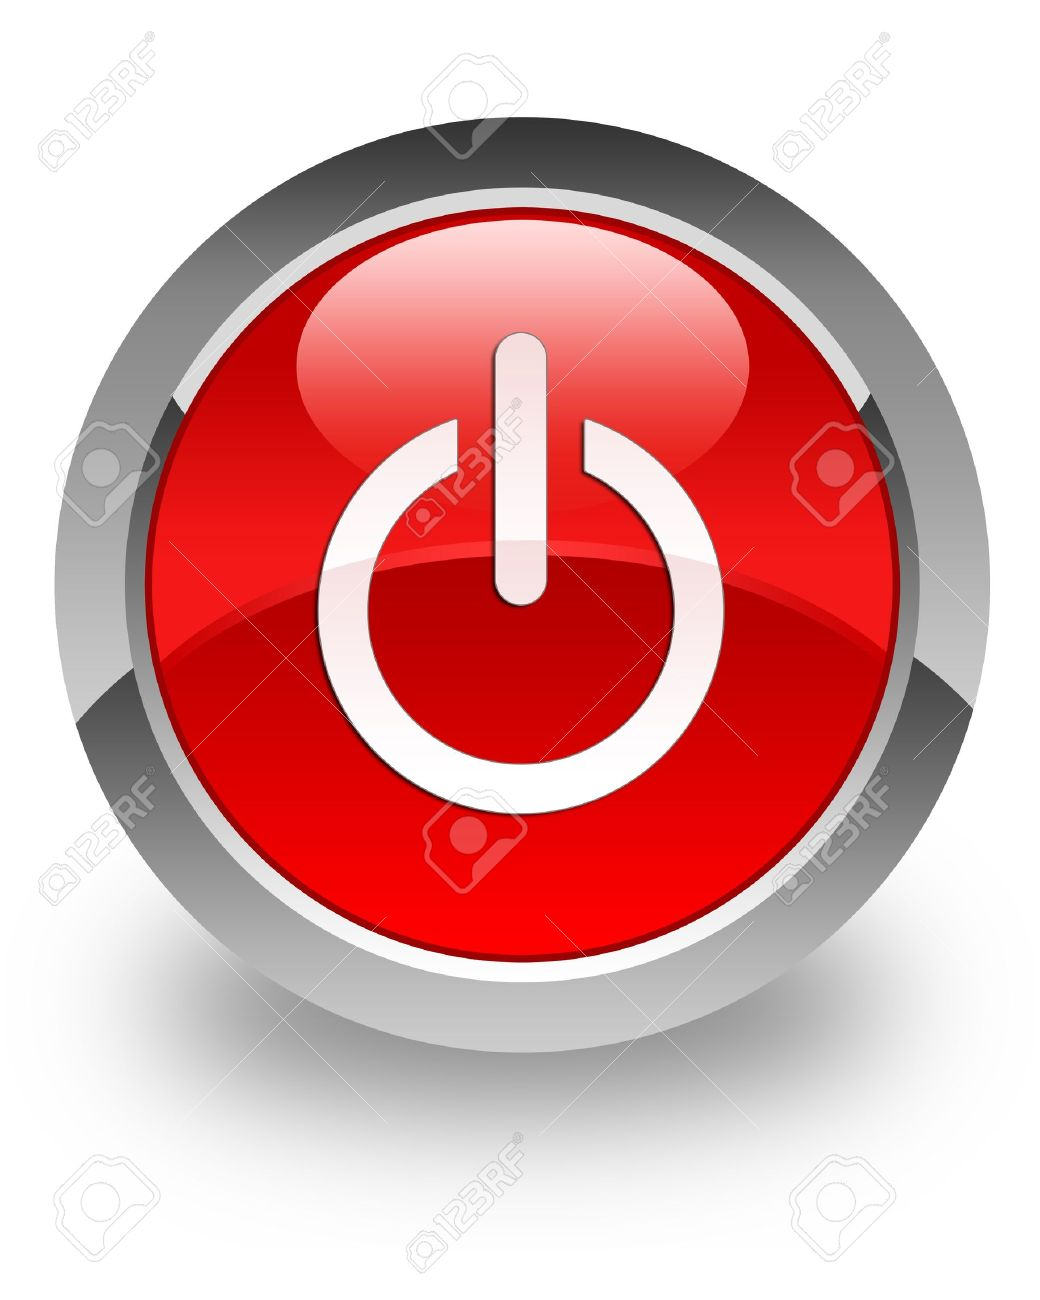 Power Off Icon On Glossy Red Round Button Stock Photo Picture And